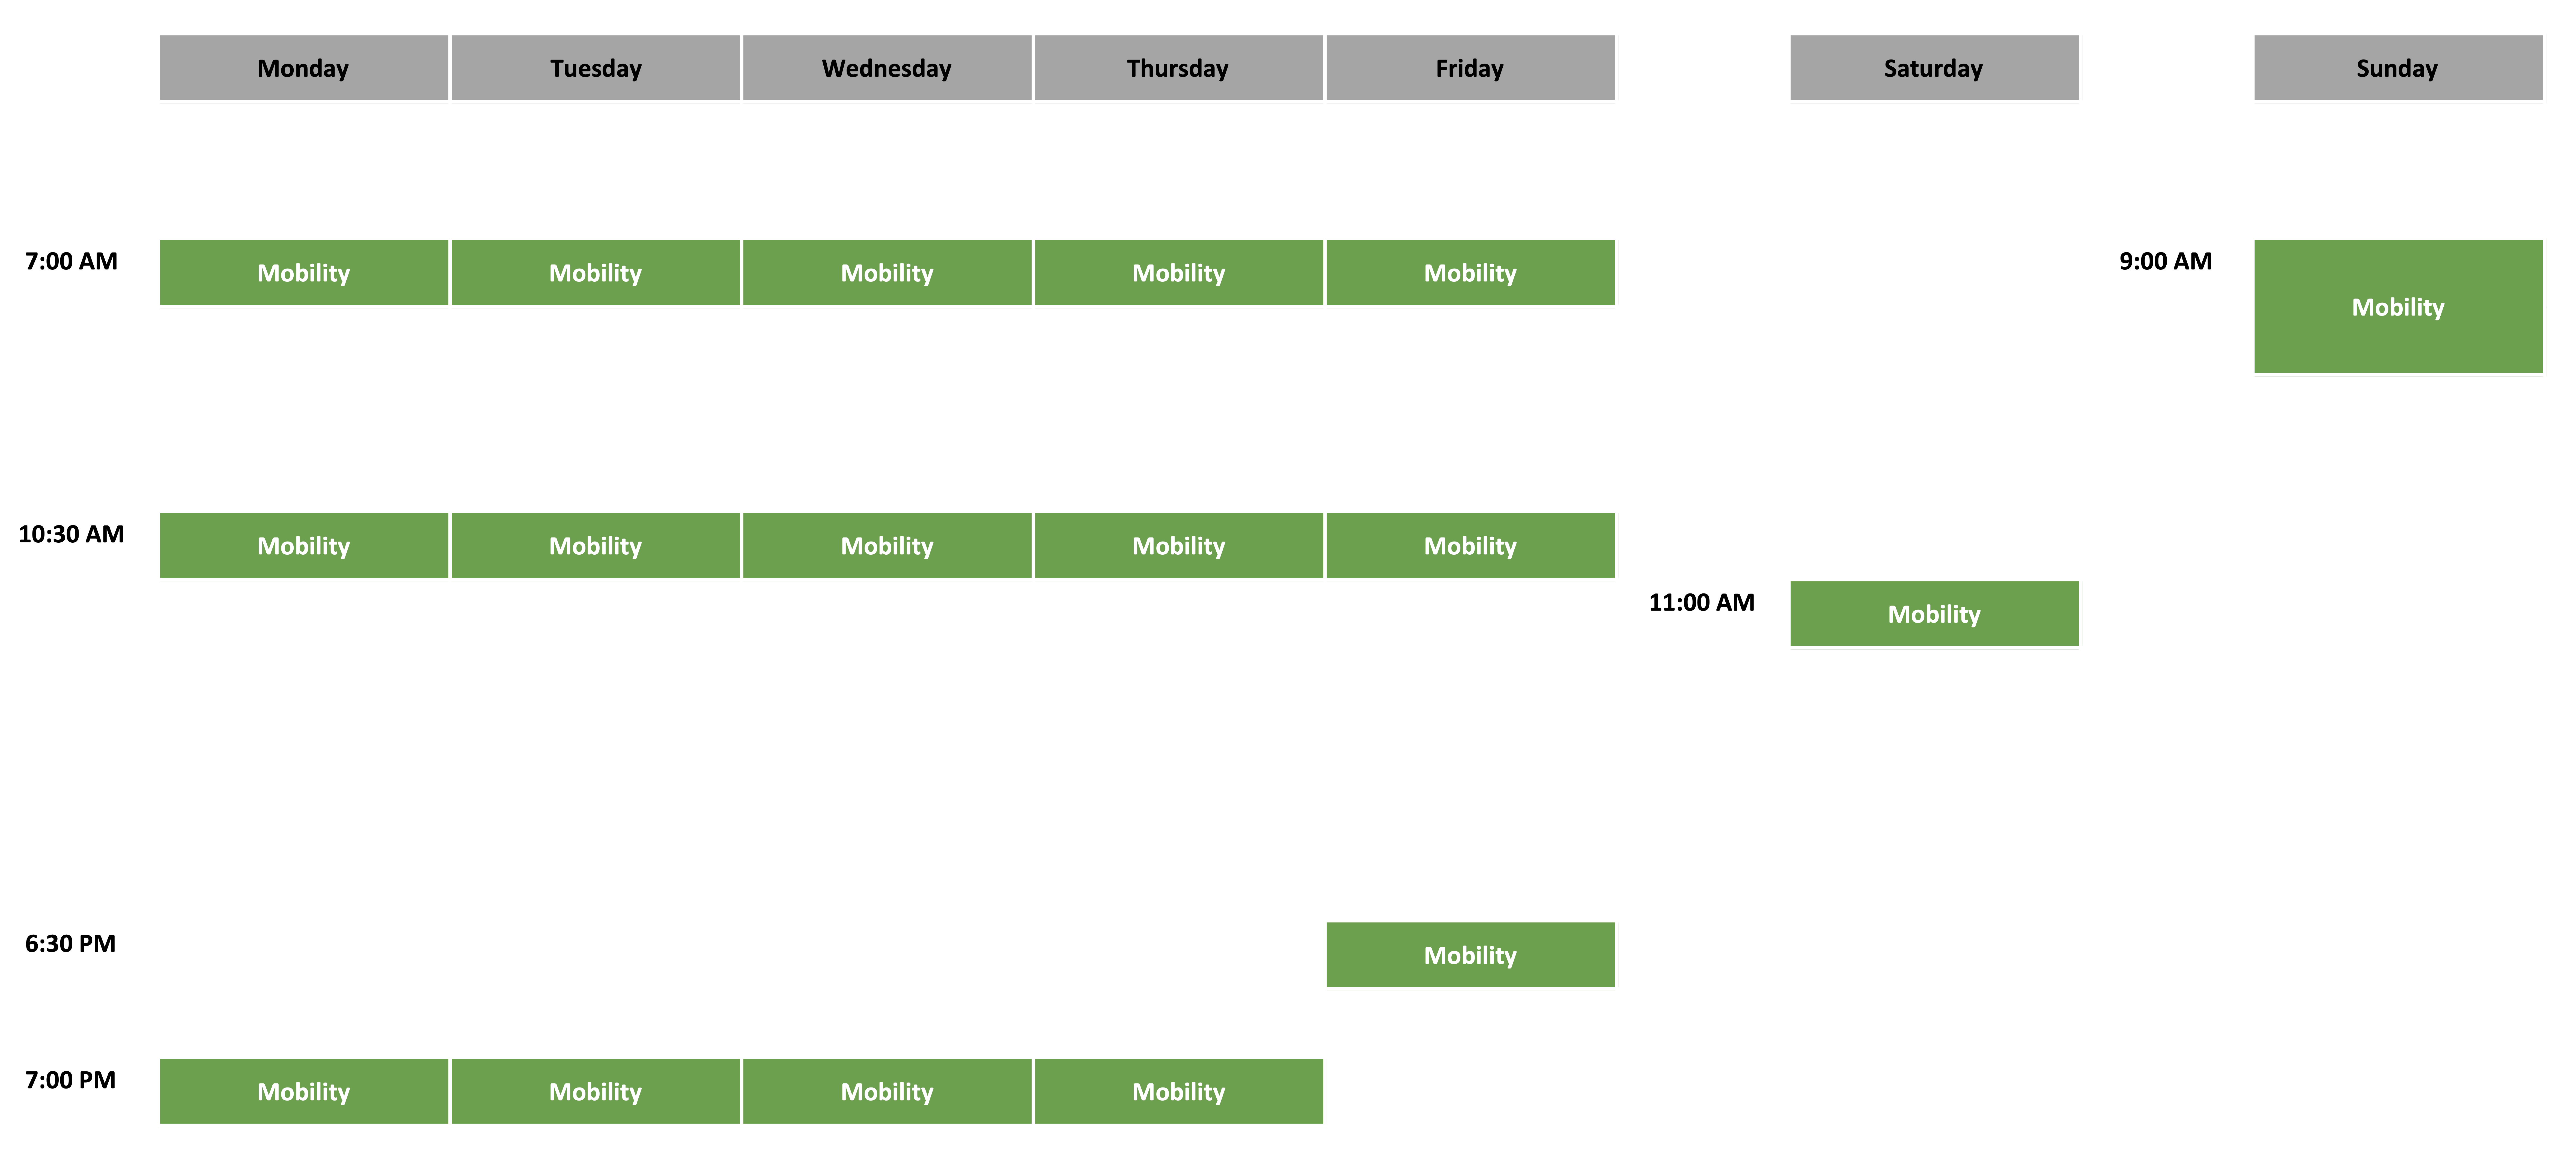 Mobility Schedule - July 2021